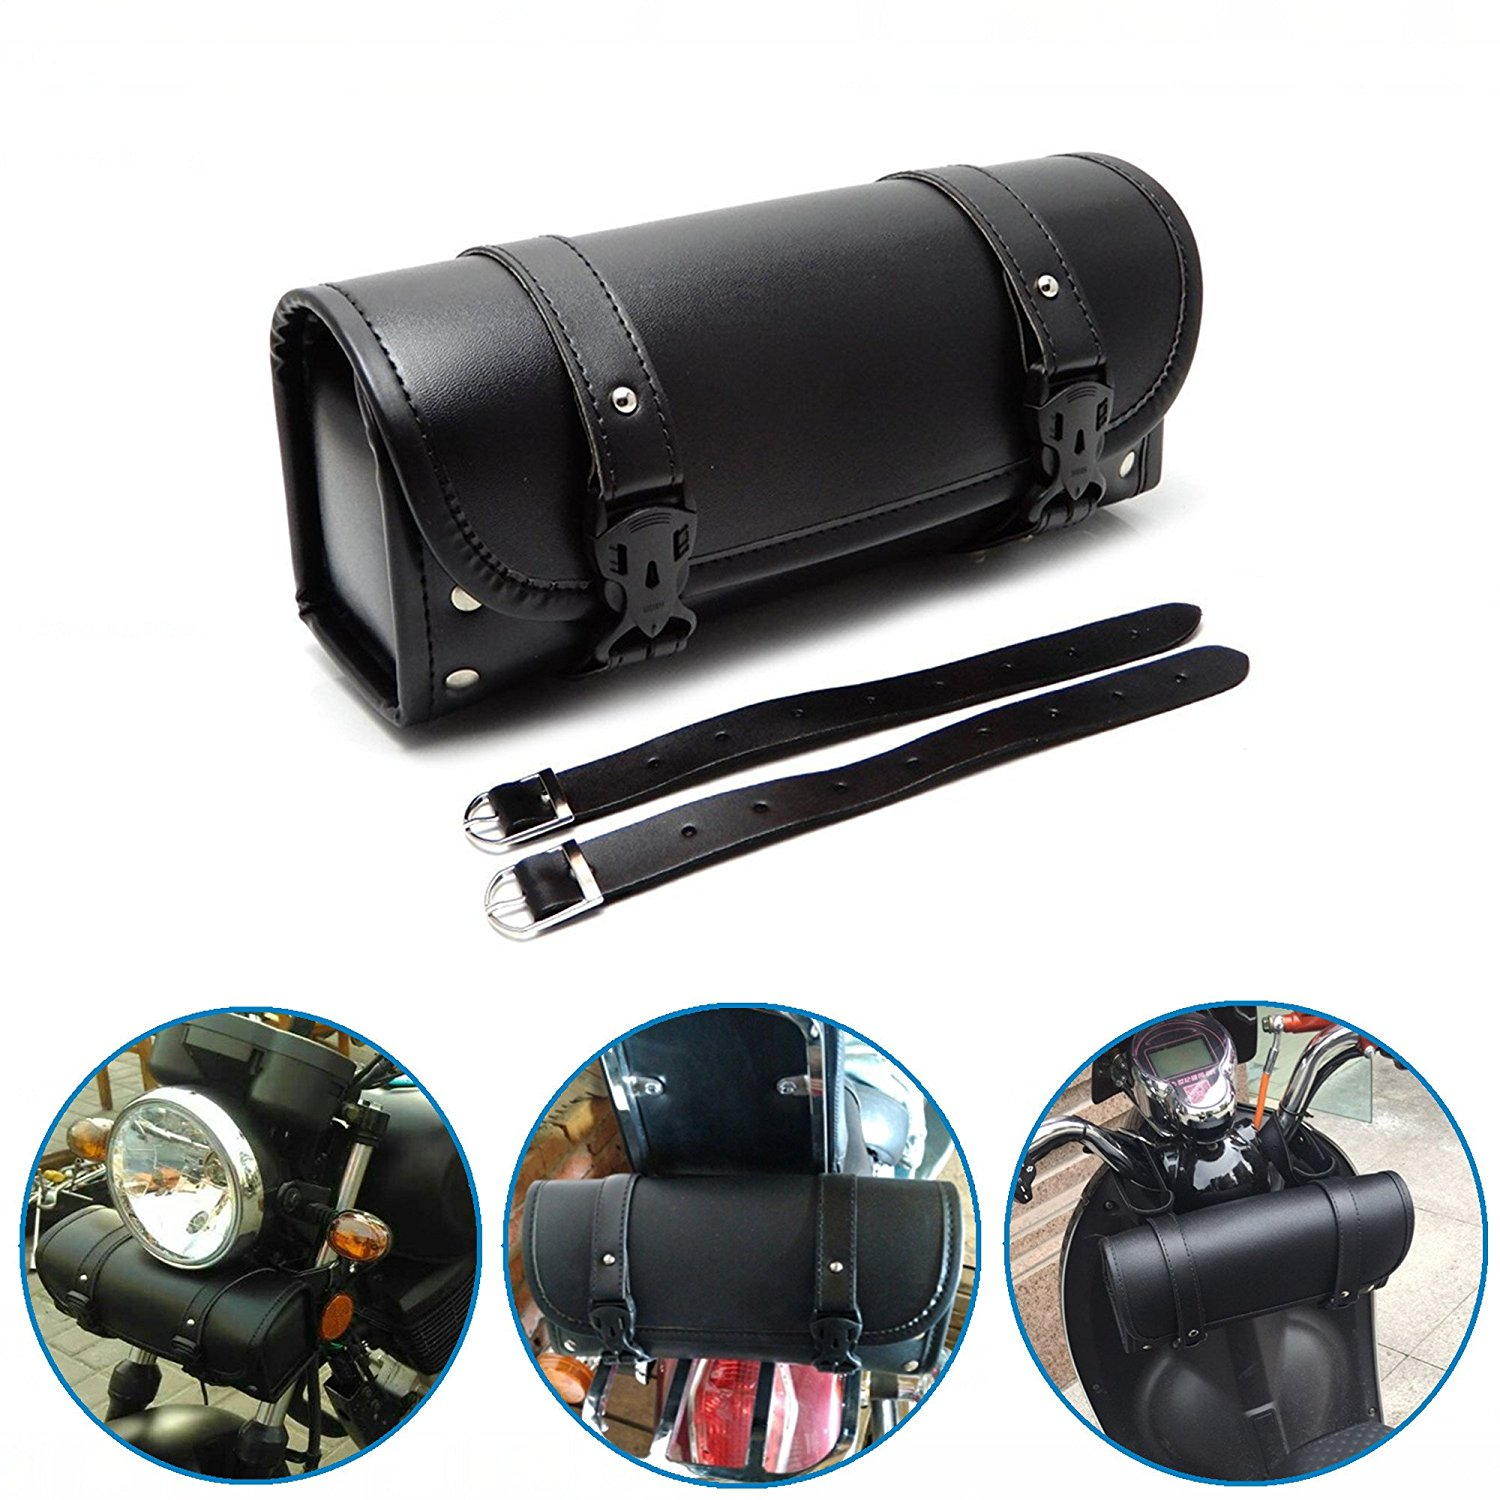 Black Motorcycle Handlebar Sissy Bar Saddlebag Roll Barrel Tool Bag PU Leather Saddlebags For Yamaha Harley Suzuki